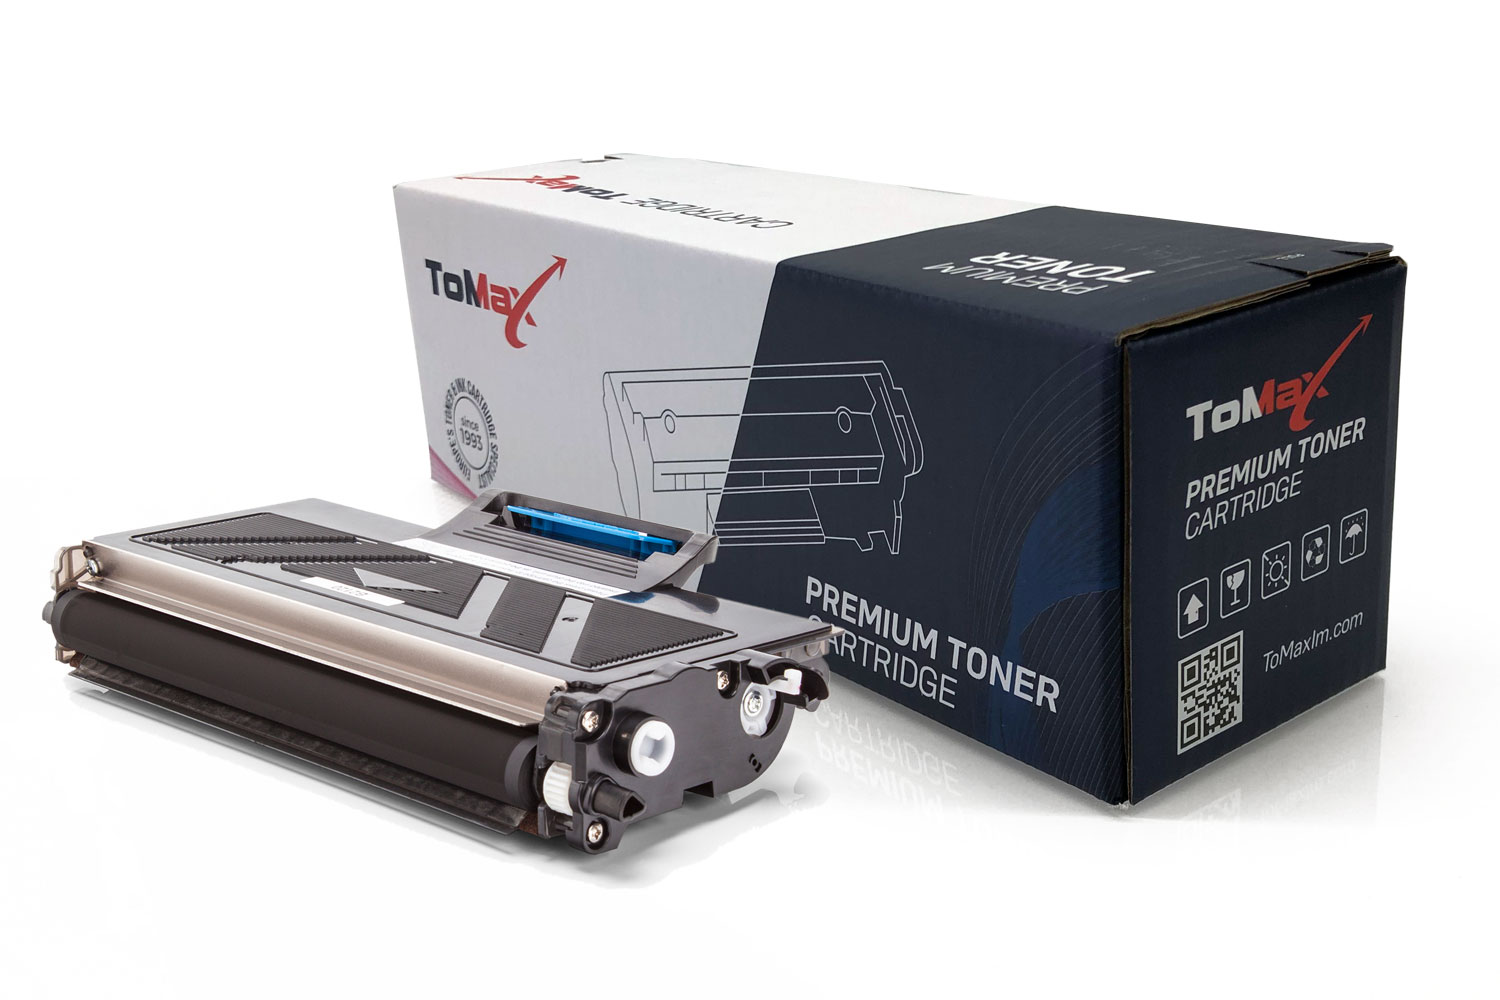 ToMax Premium Toner Cartridge replaces Canon 6271B002 / 731C Cyan